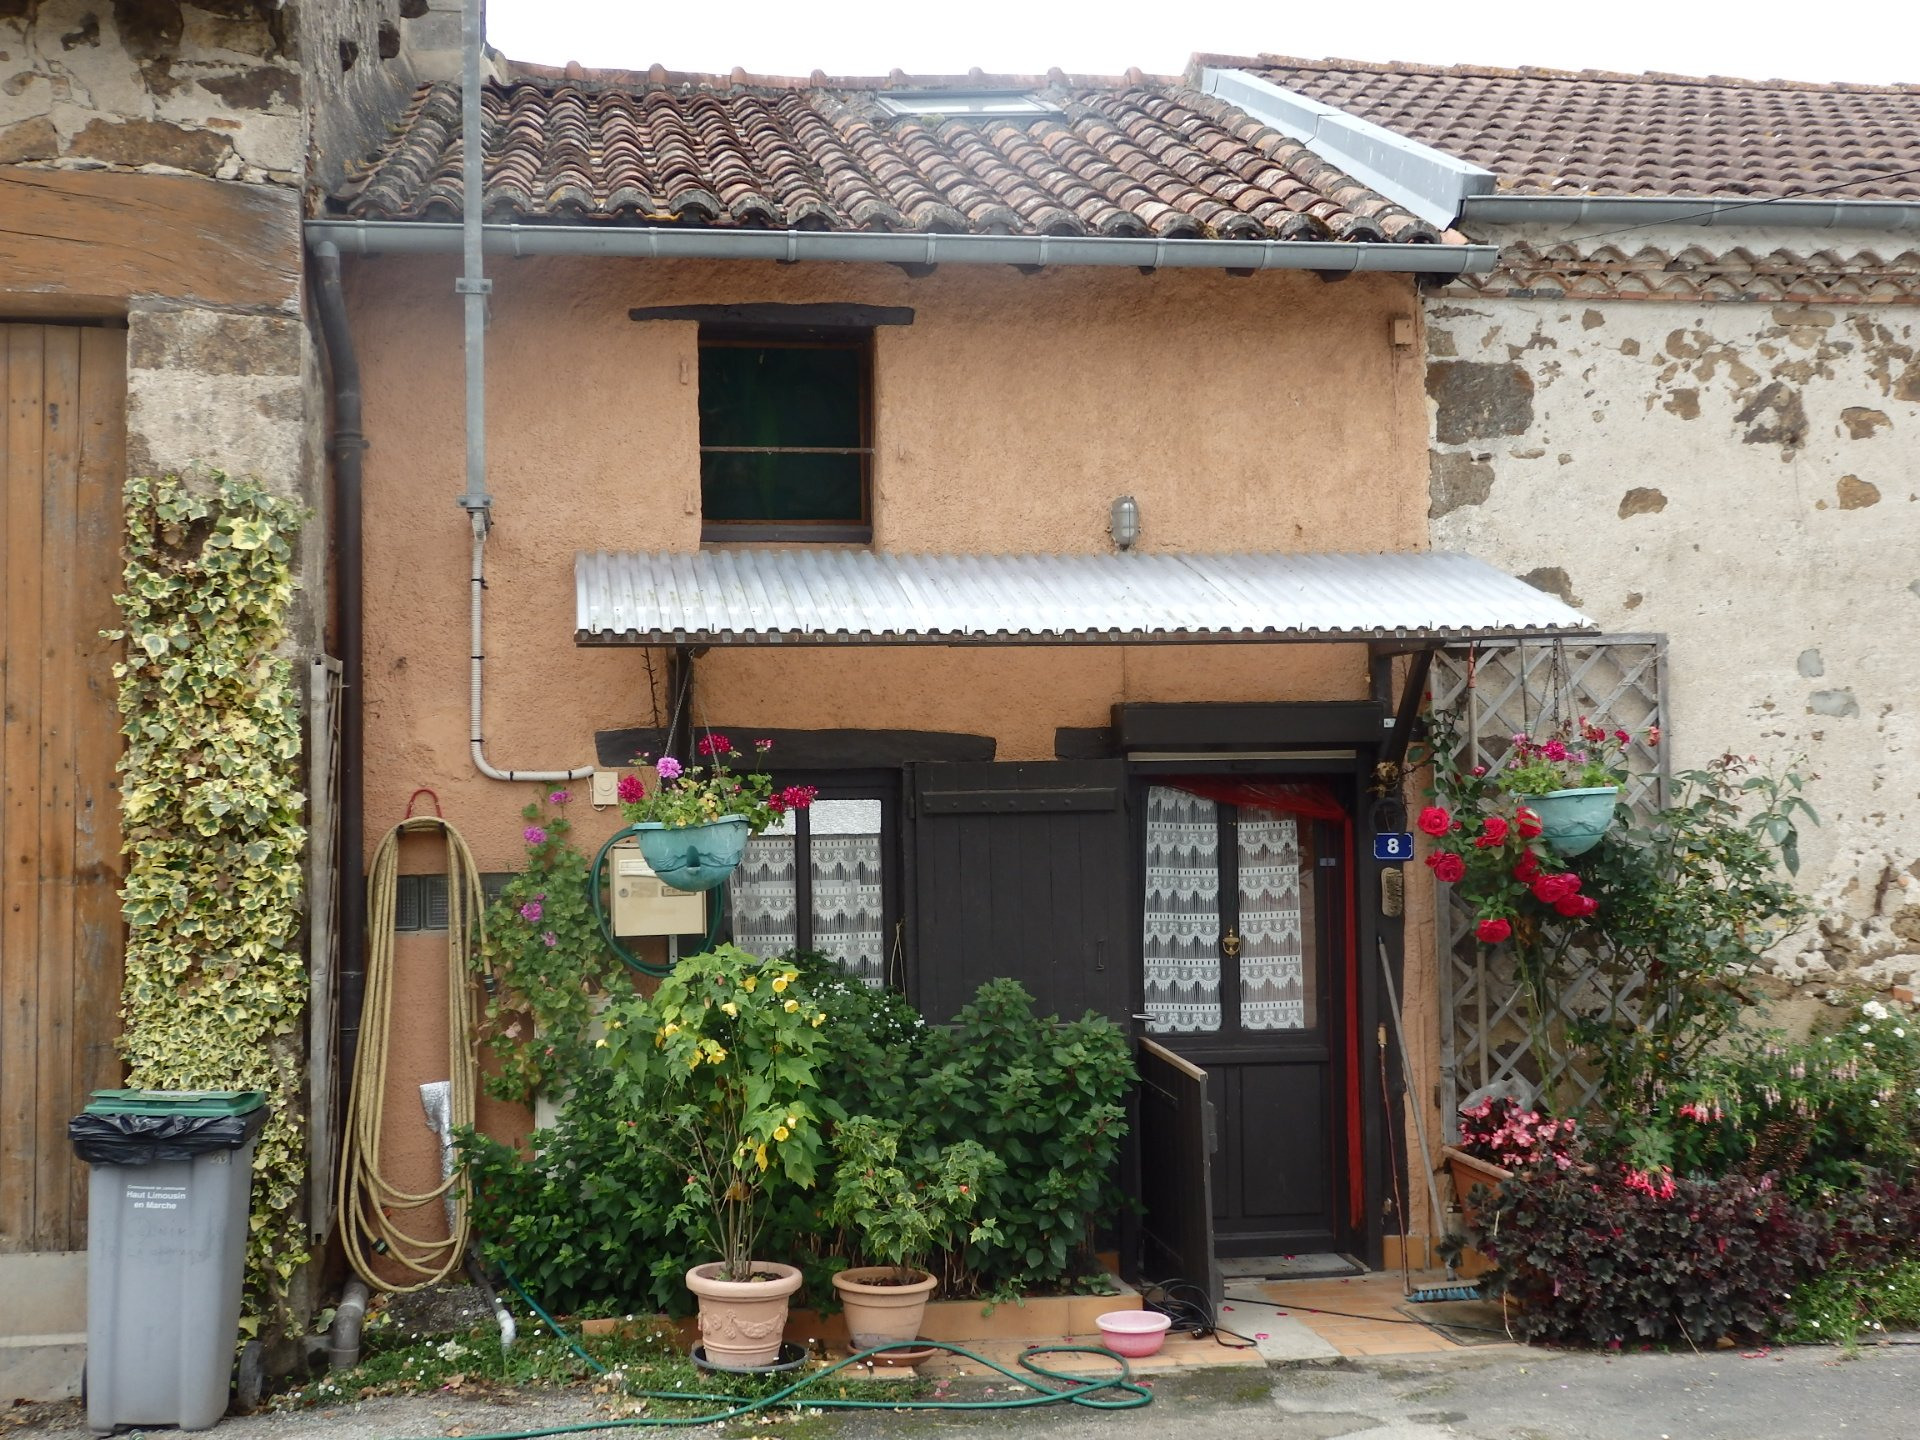 For Sale 1 Bed Cottage with Gardens in the Haute Vienne